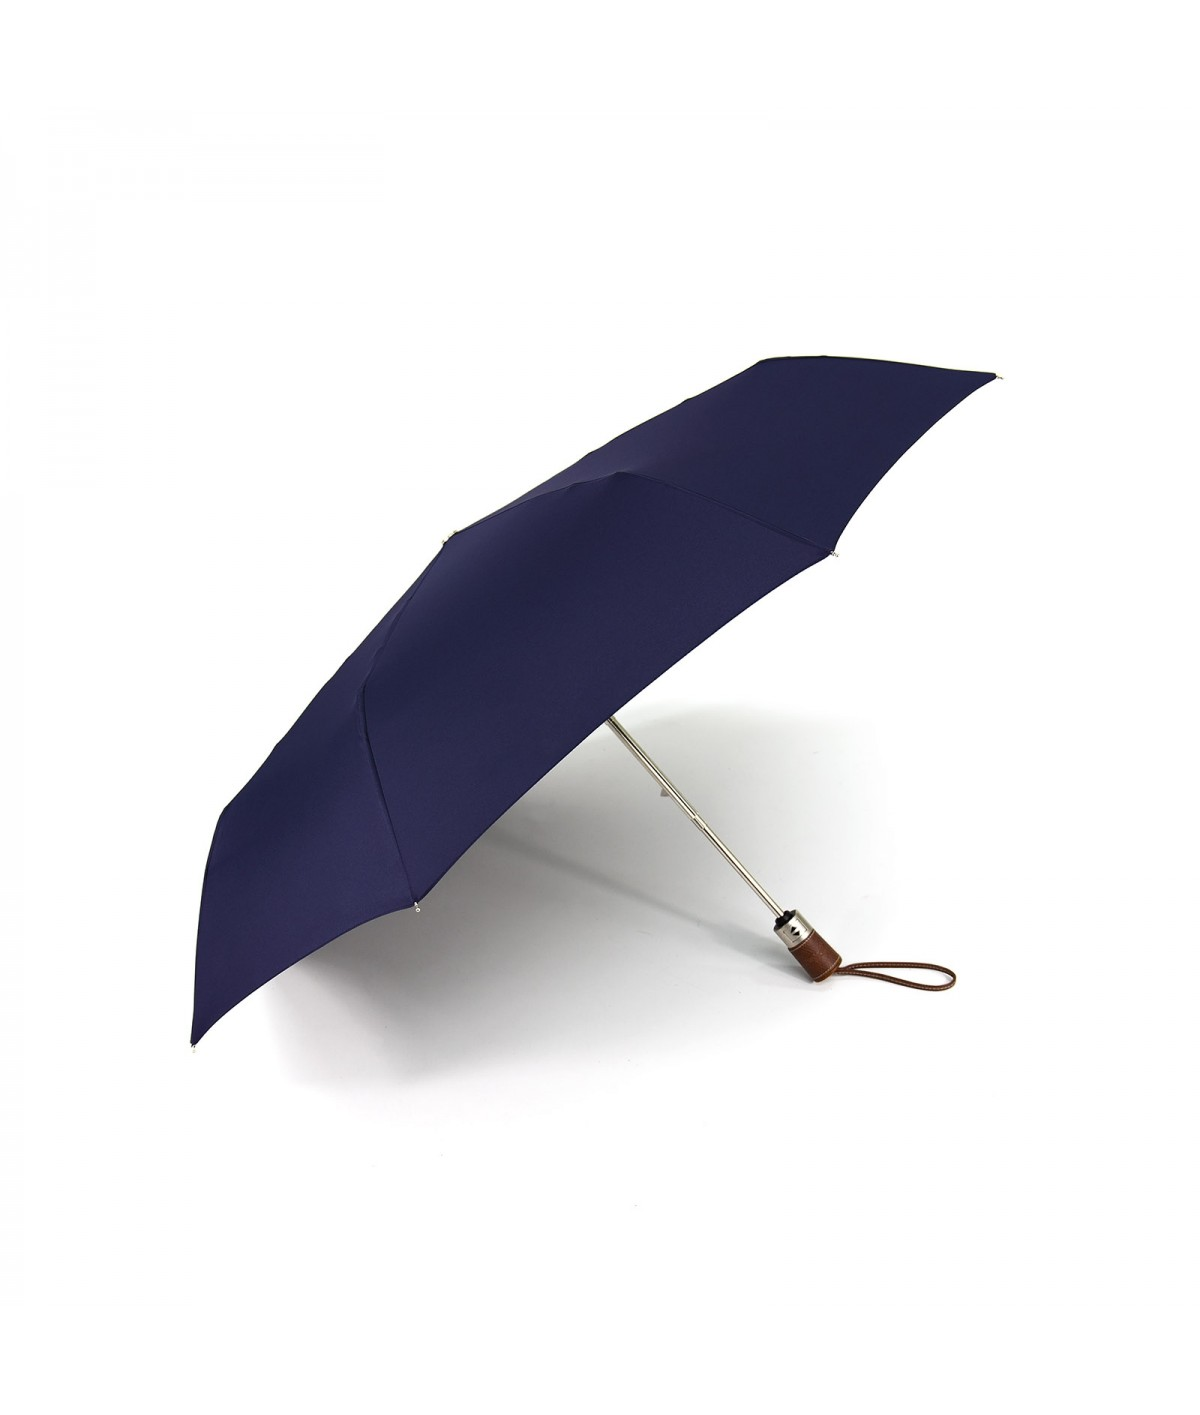 """→ Longchamp Umbrella """"Folding"""" - Navy - Automatic opening/closing - Handcrafted in France by Maison Pierre Vaux"""